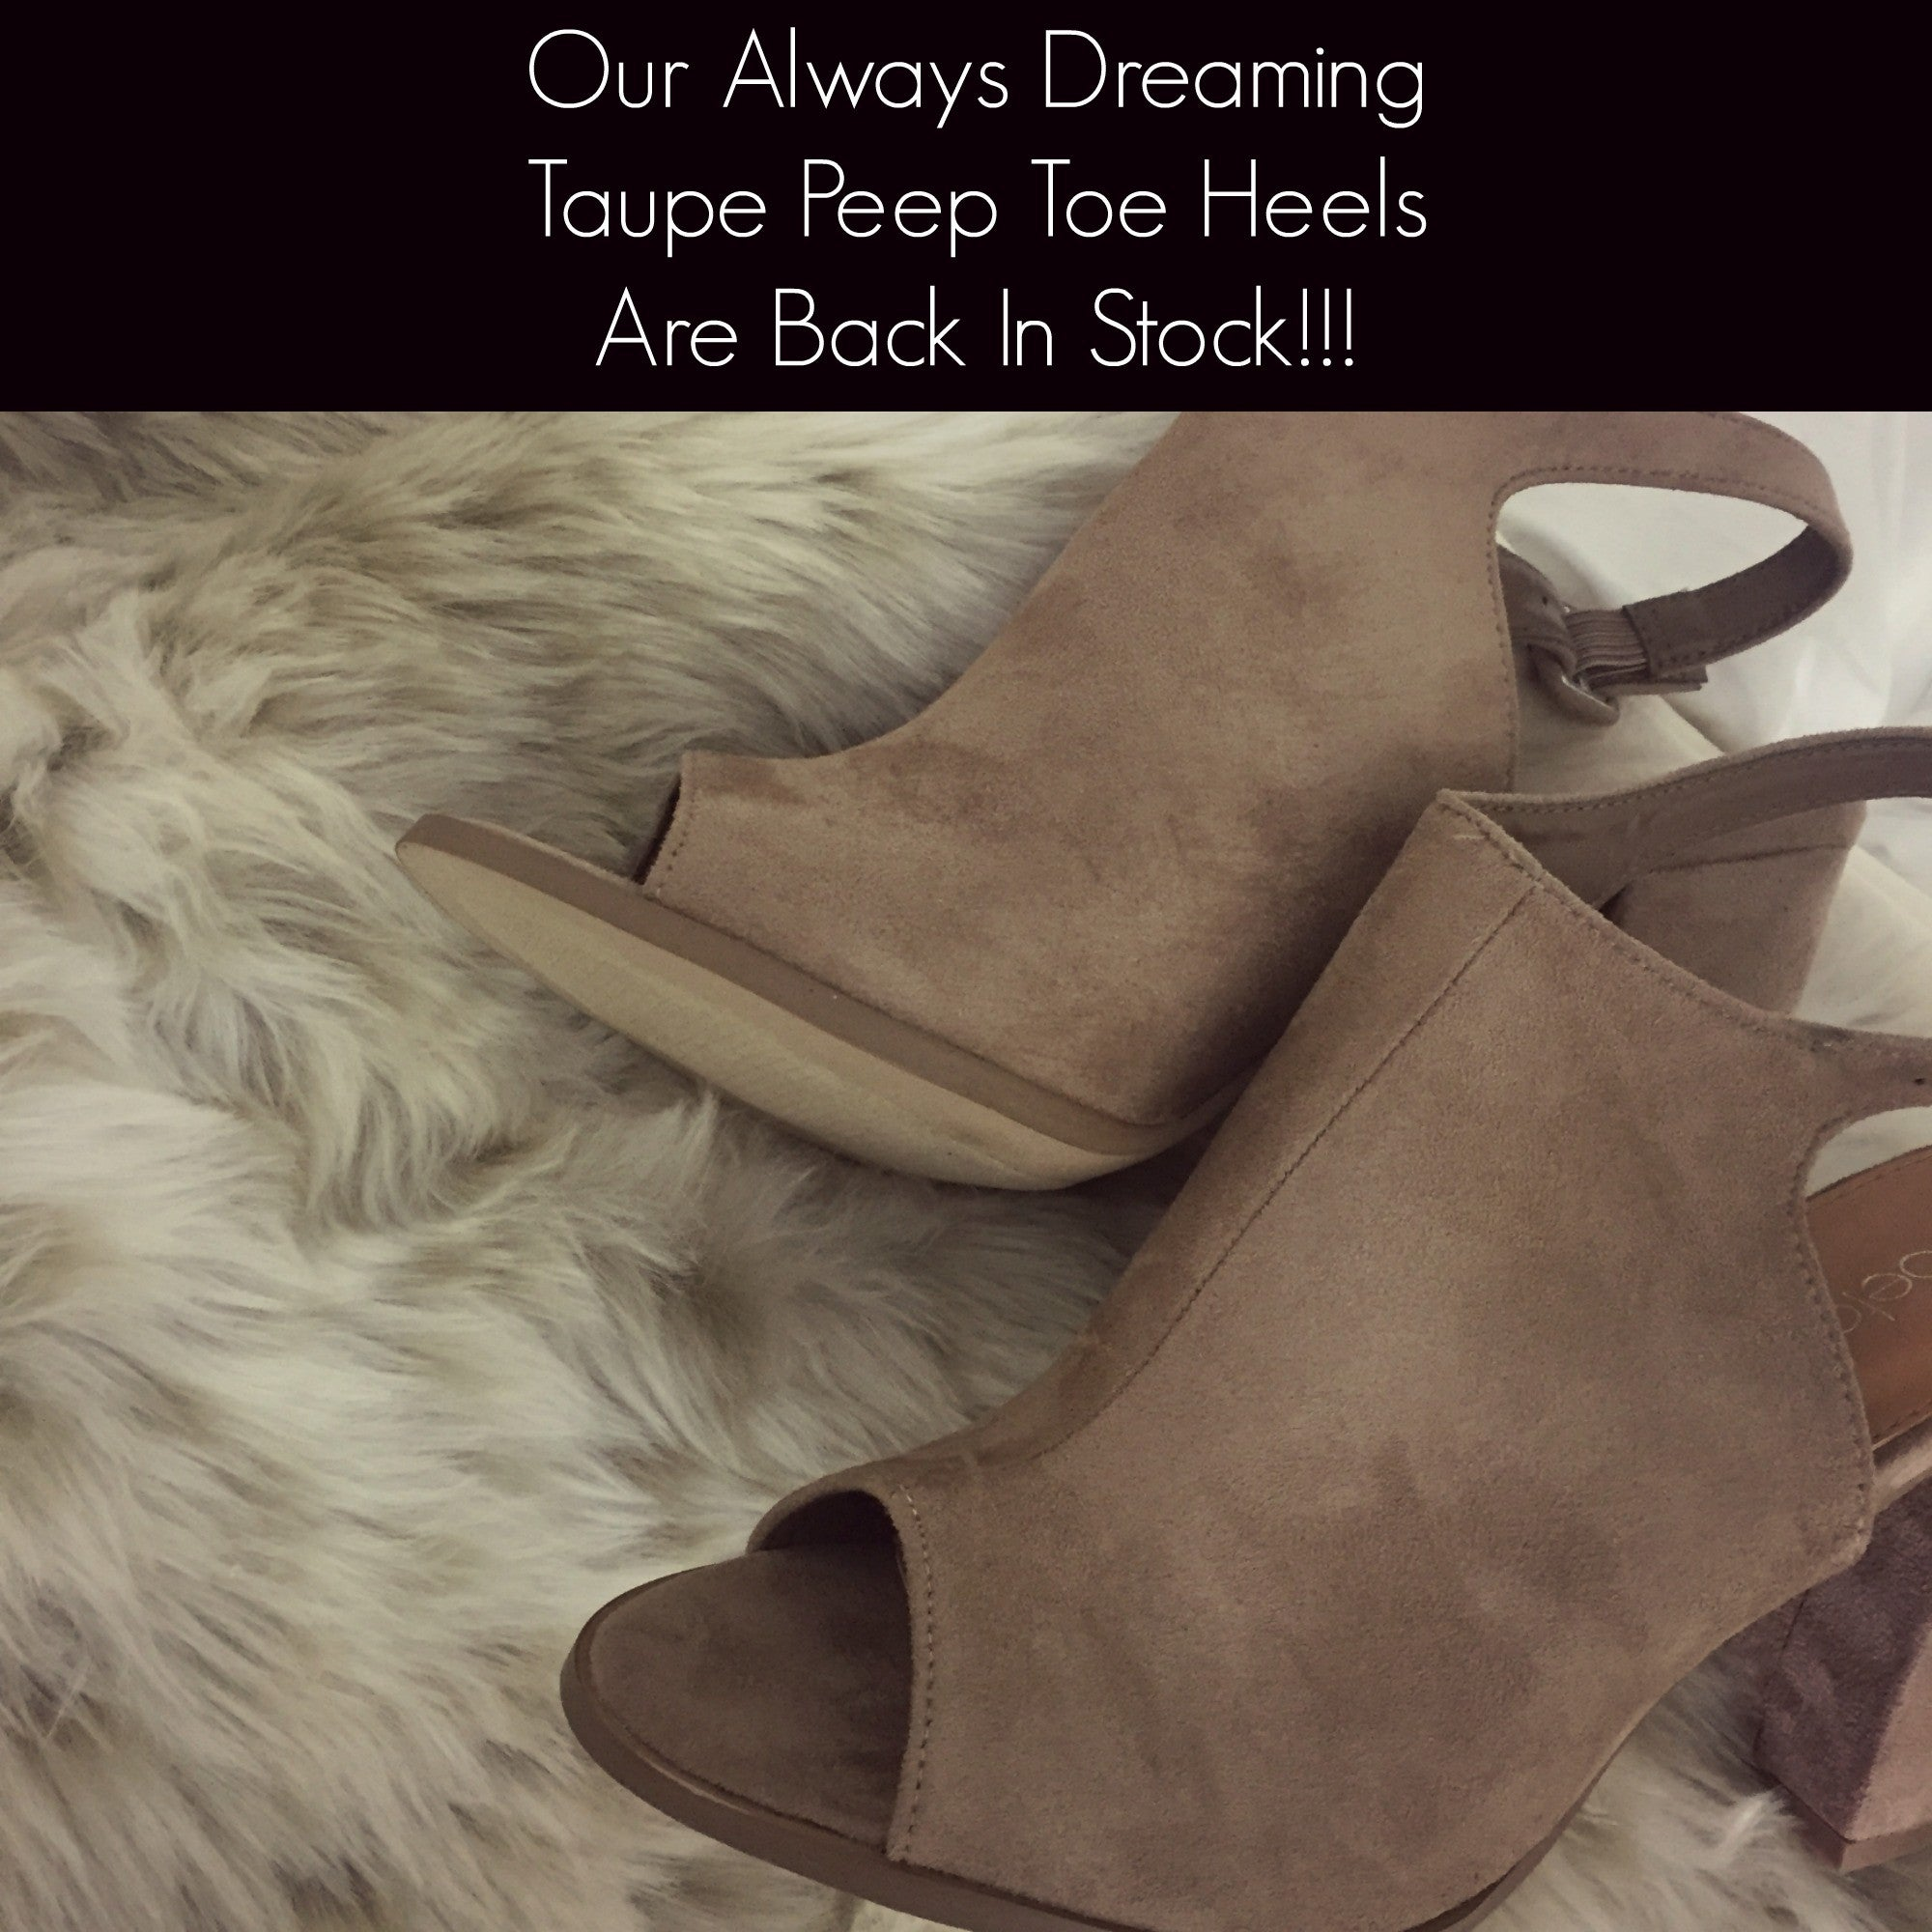 Our Always Dreaming Taupe Peep Toe Heels Are Back In Stock!!!